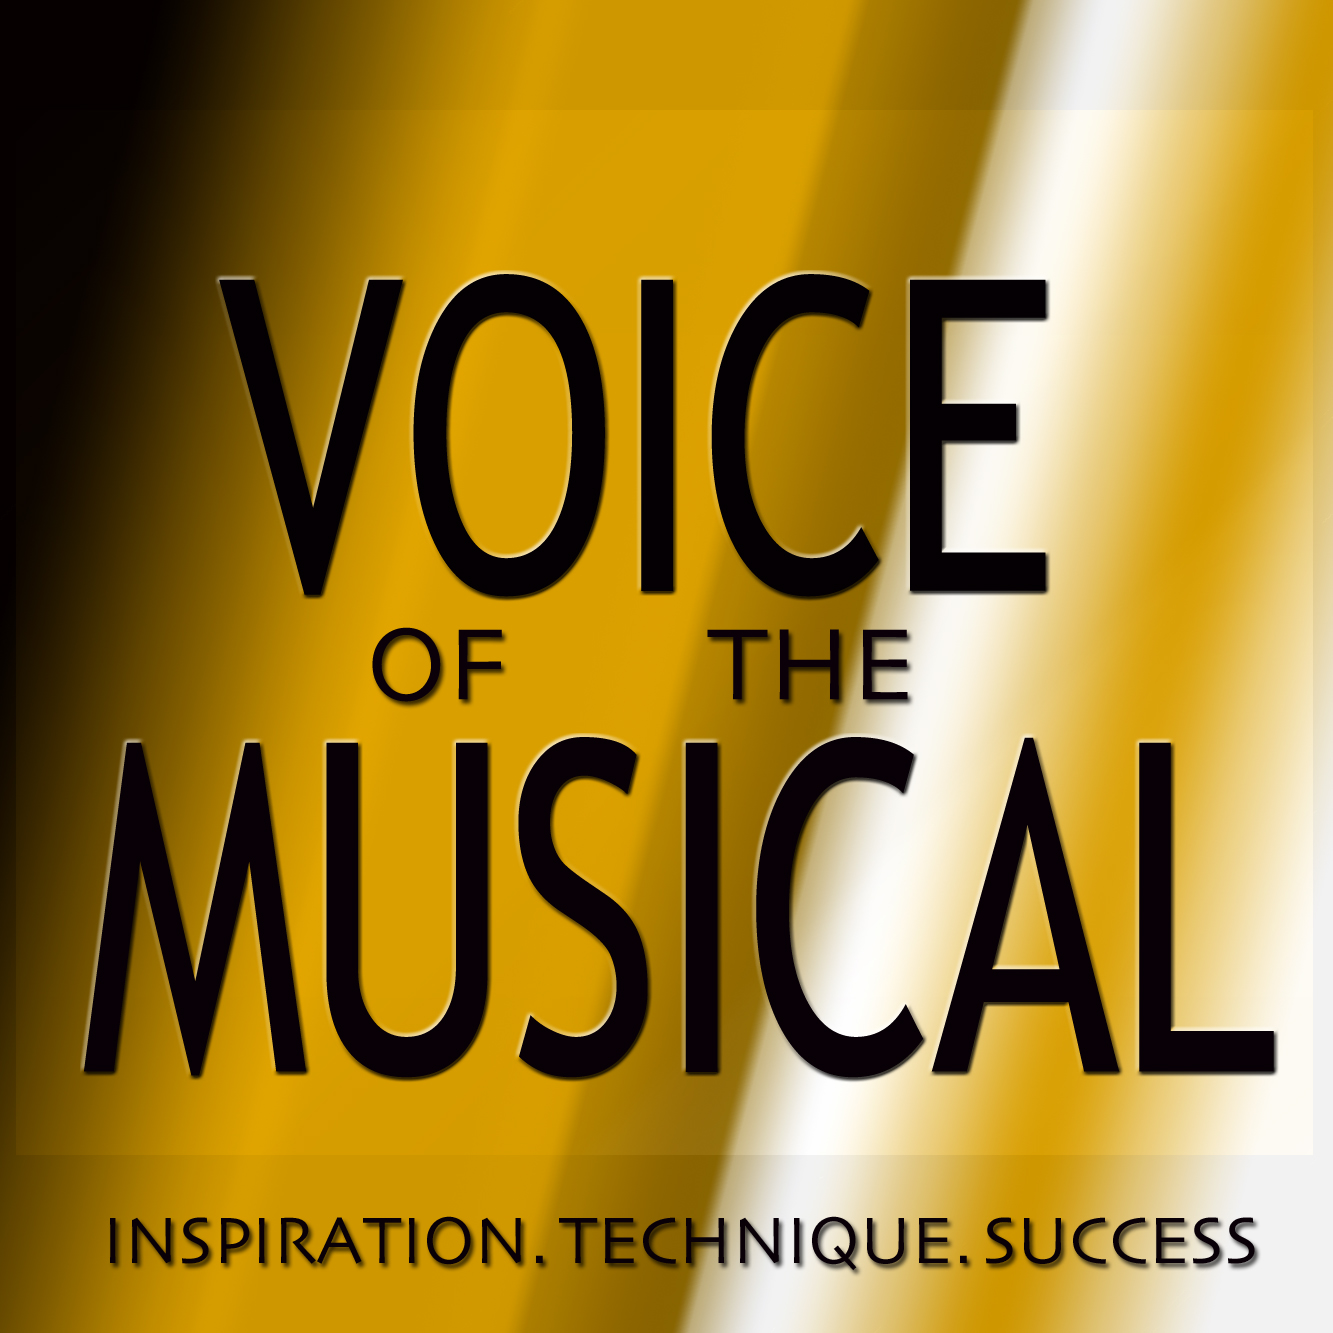 Voice of the Musical